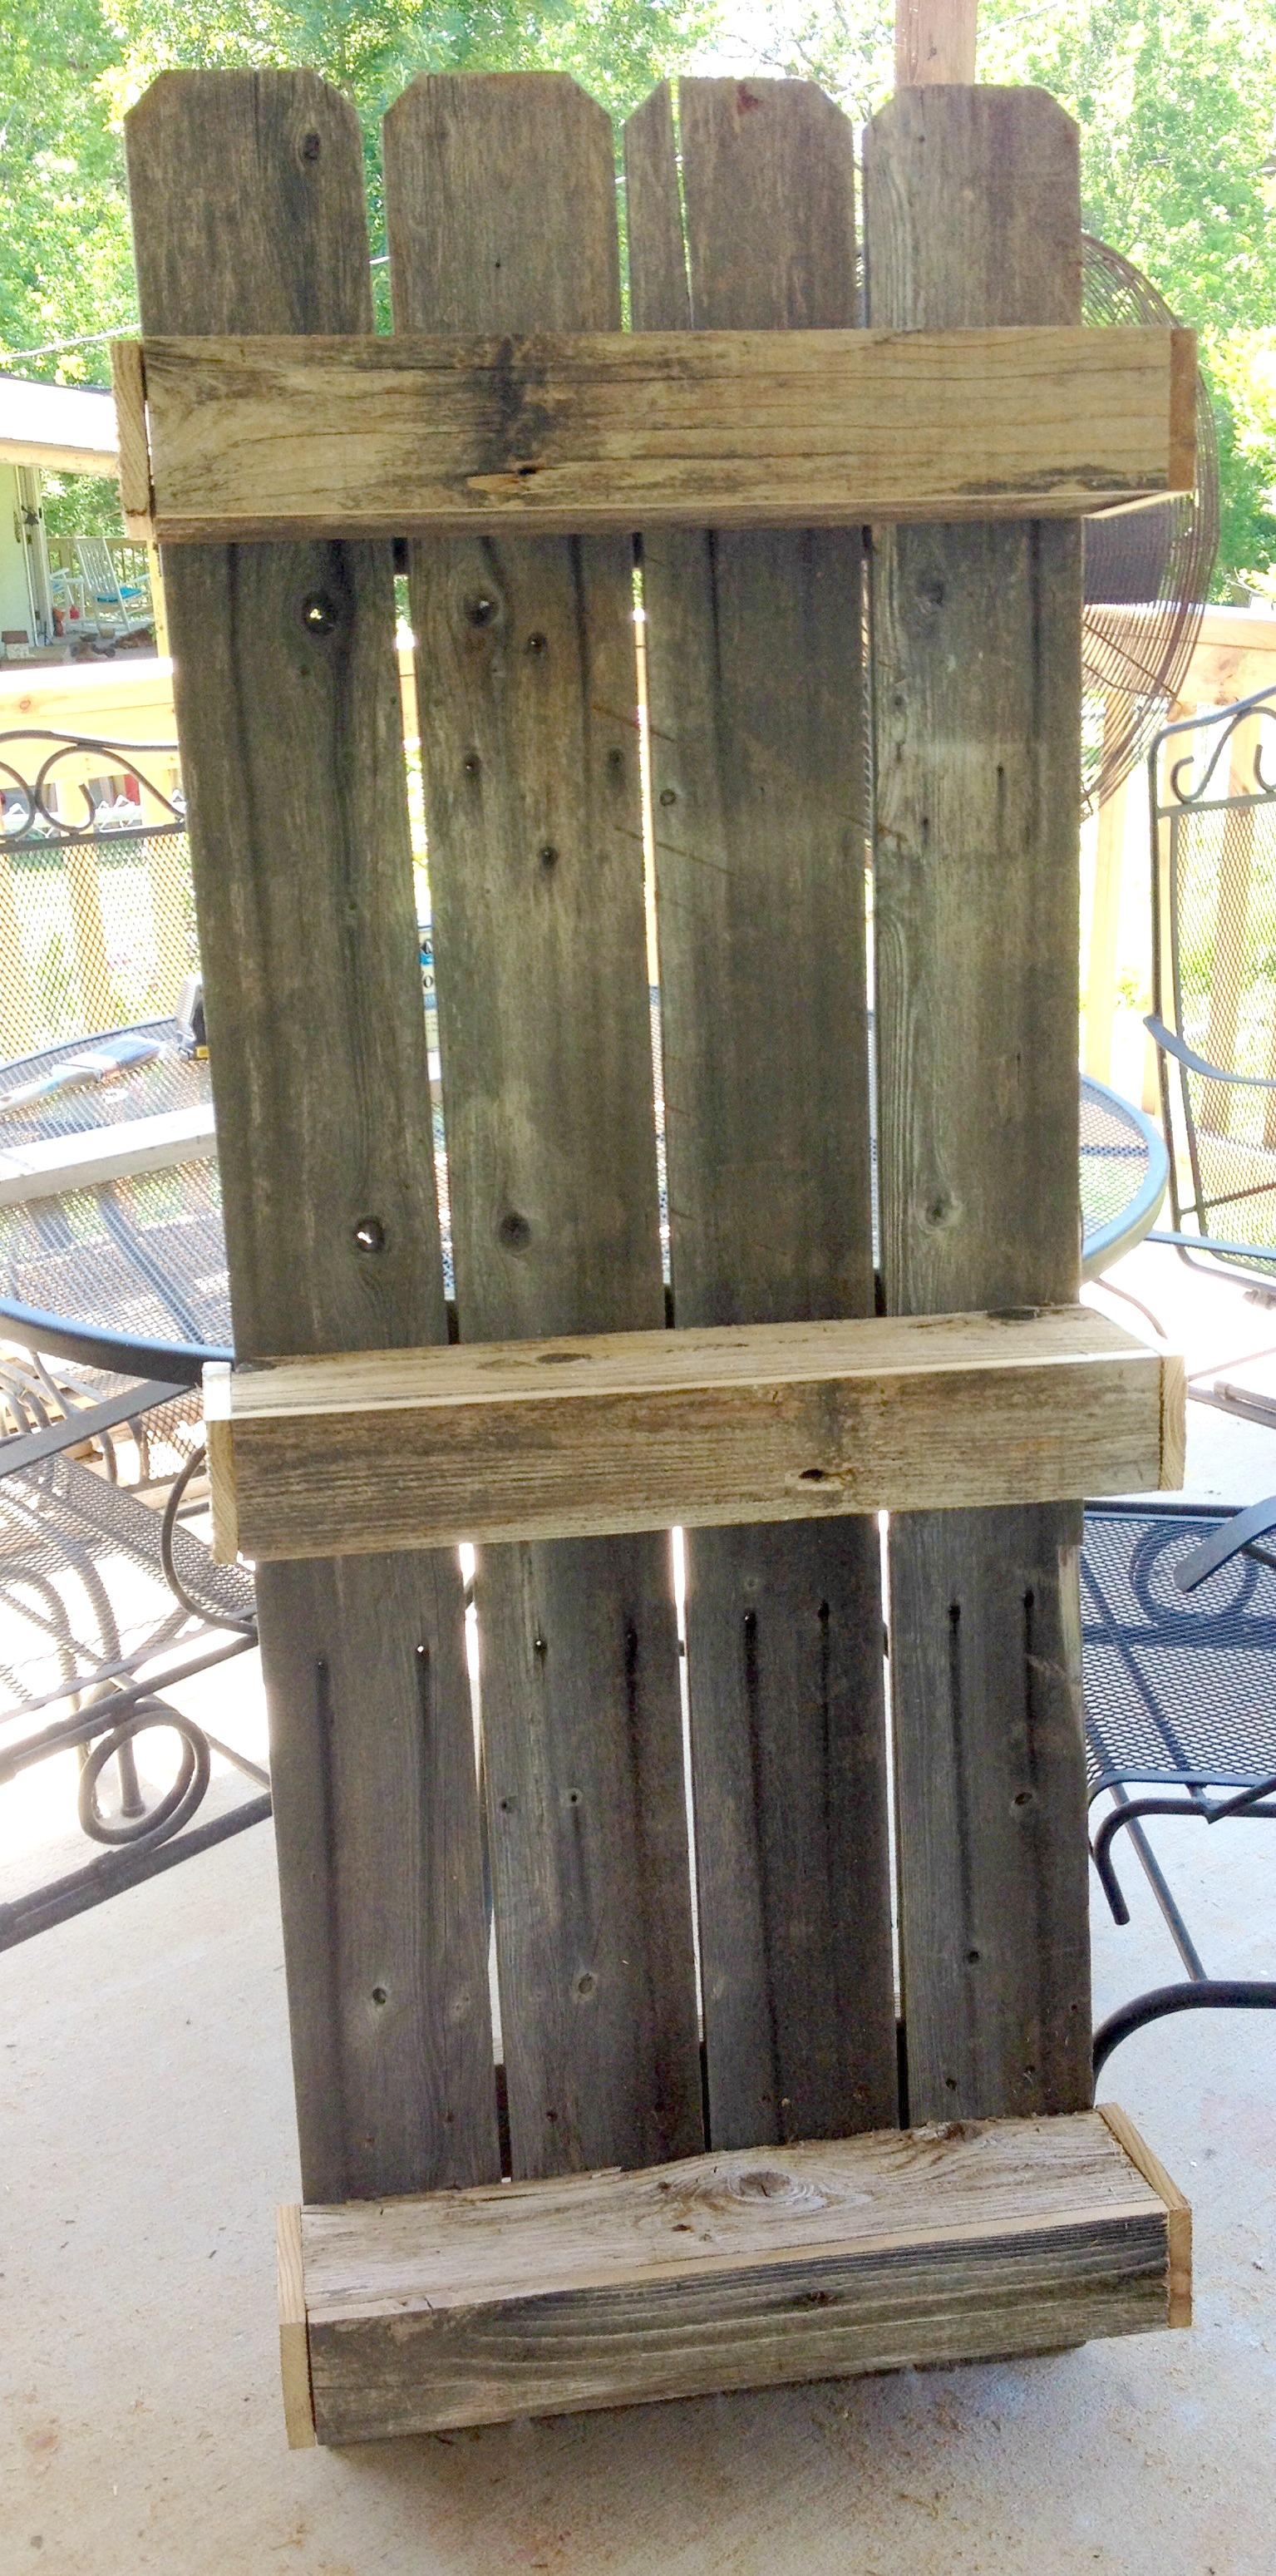 rustic bathroom wall shelves. rustic wall shelf for the bathroom  built from fencing The Weekend Country Girl on Remodelaholic Build an Easy Rustic Bathroom Shelf